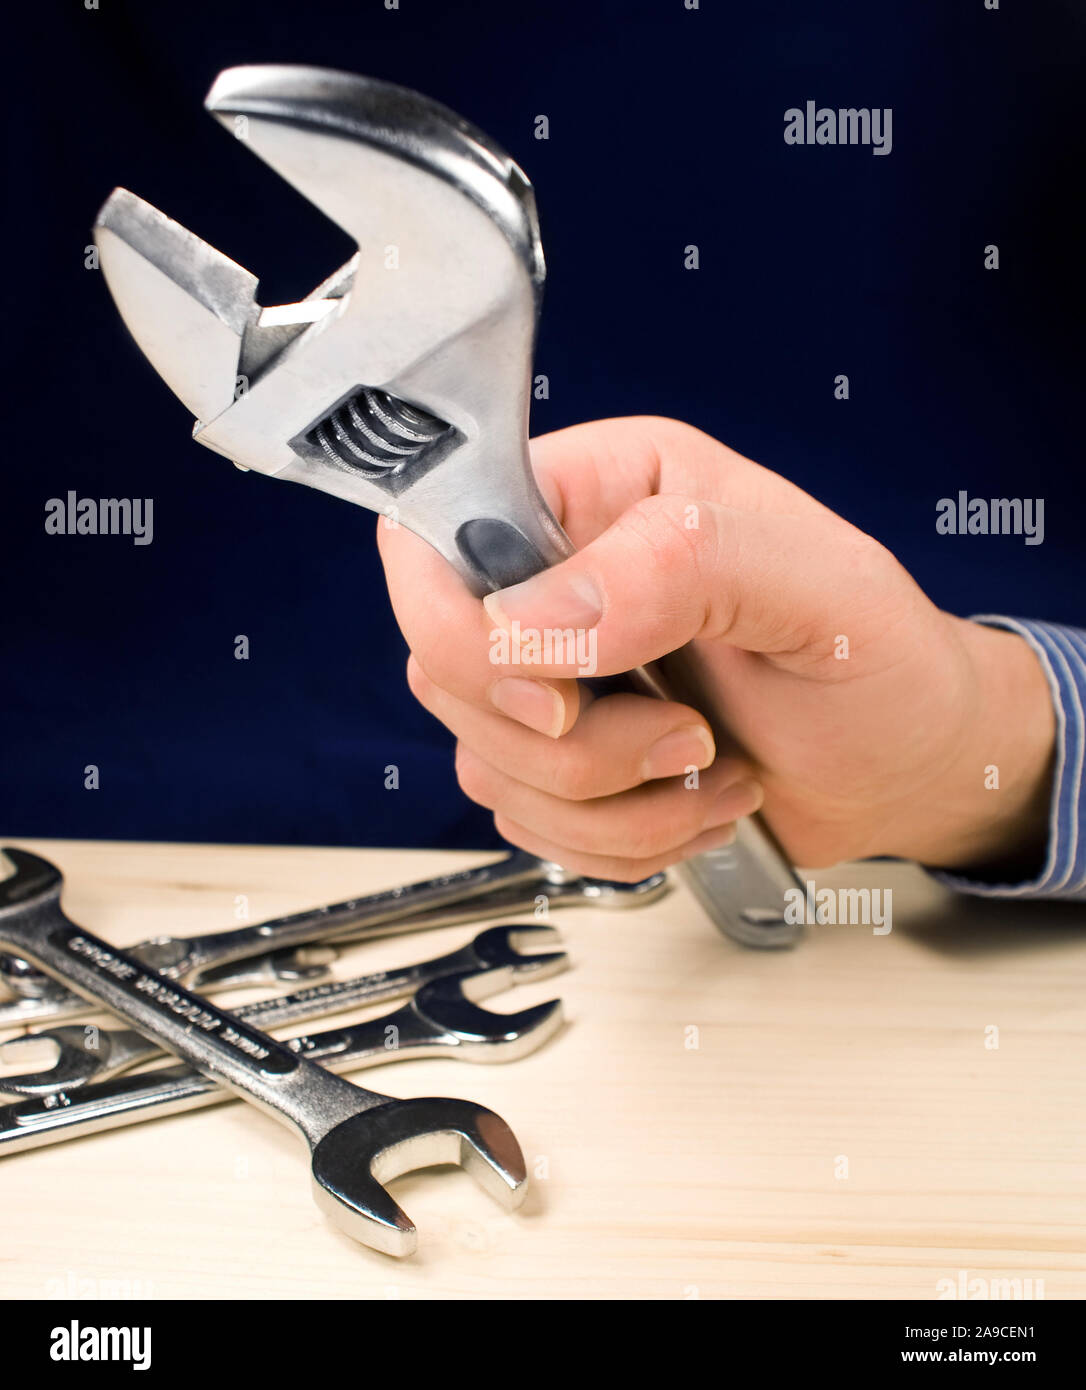 Male hand and tools Stock Photo